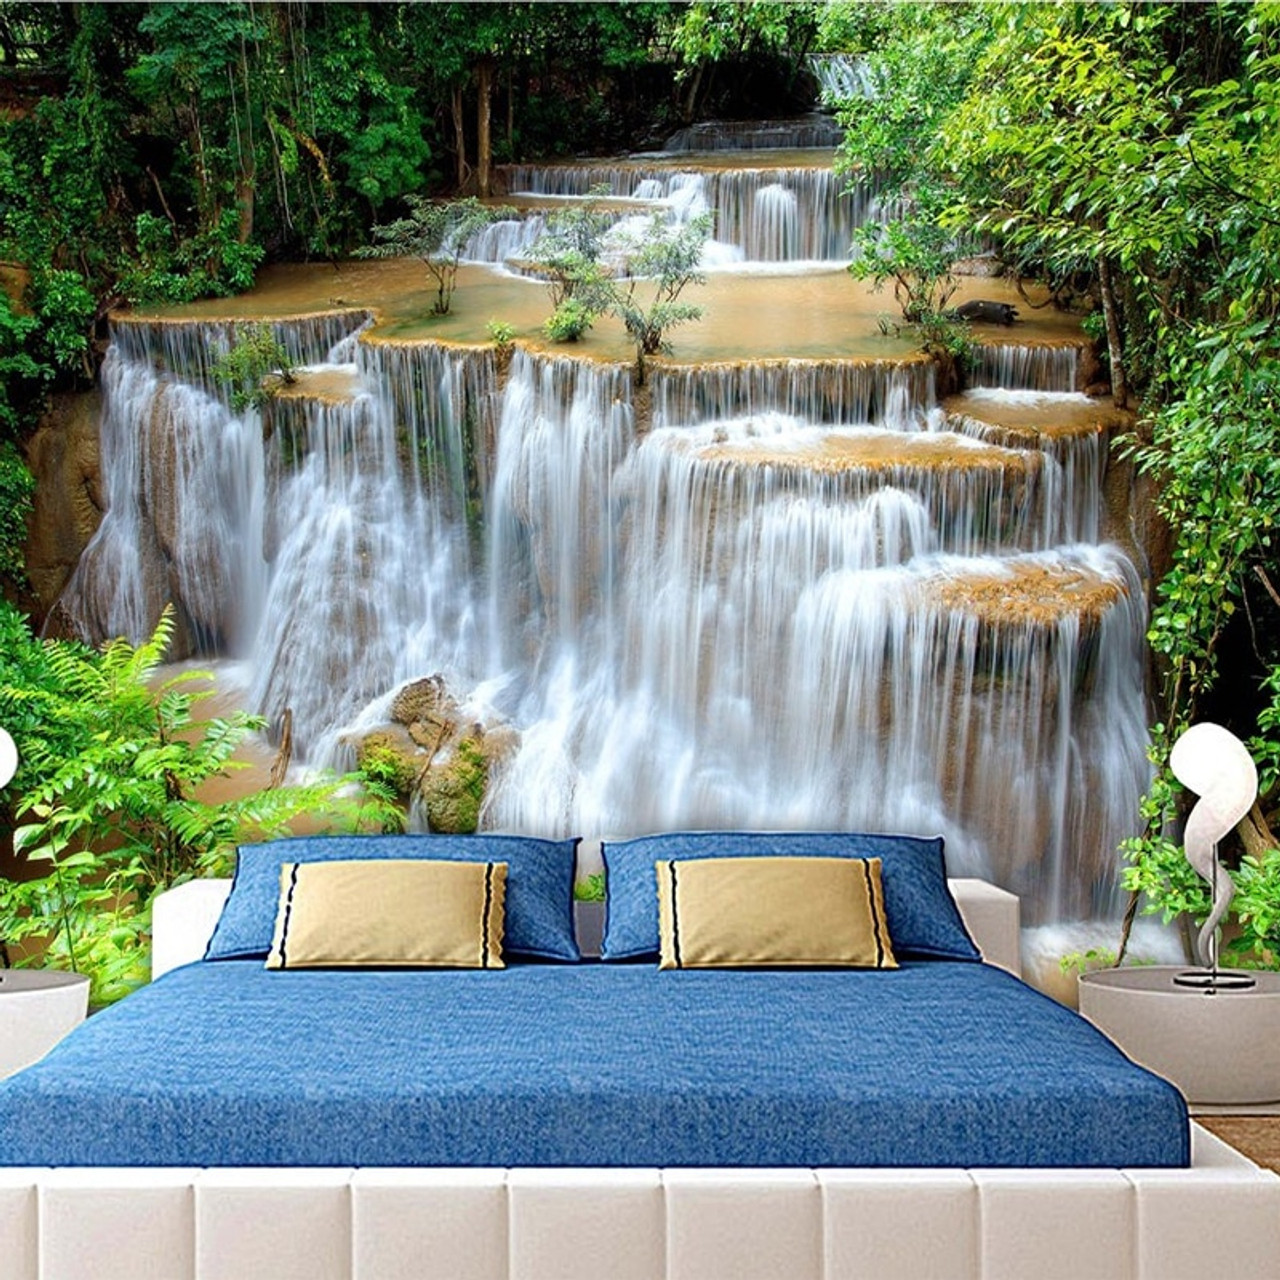 Custom 3d Photo Wallpaper Hd Green Landscape Waterfall Beautiful Tv Background Mural Bedroom Living Room Non Woven 3d Wall Paper Onshopdeals Com